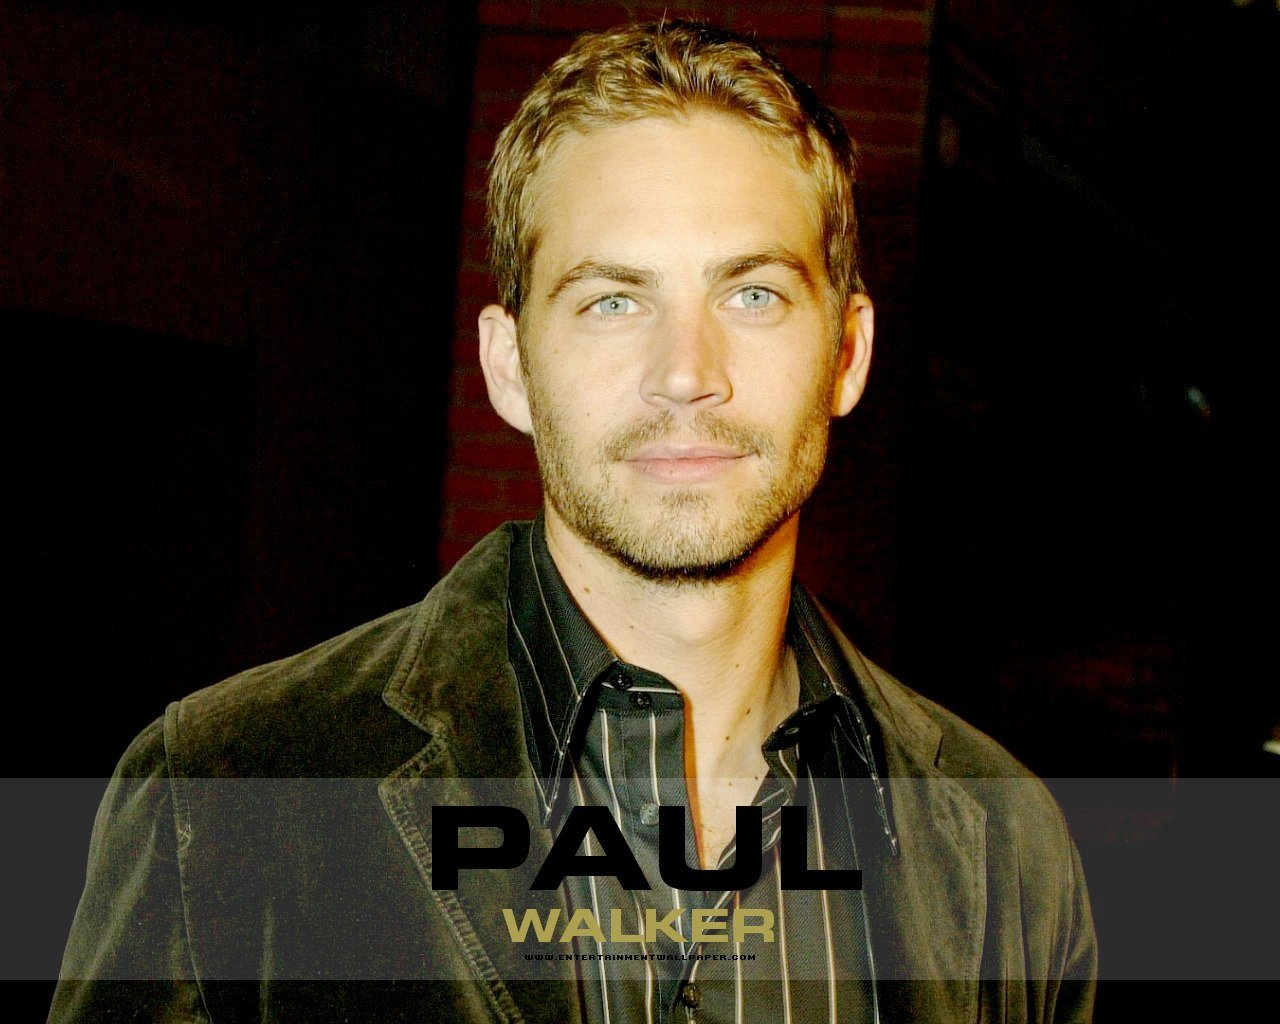 Paul Walker   Paul Walker Wallpaper 646817 1280x1024